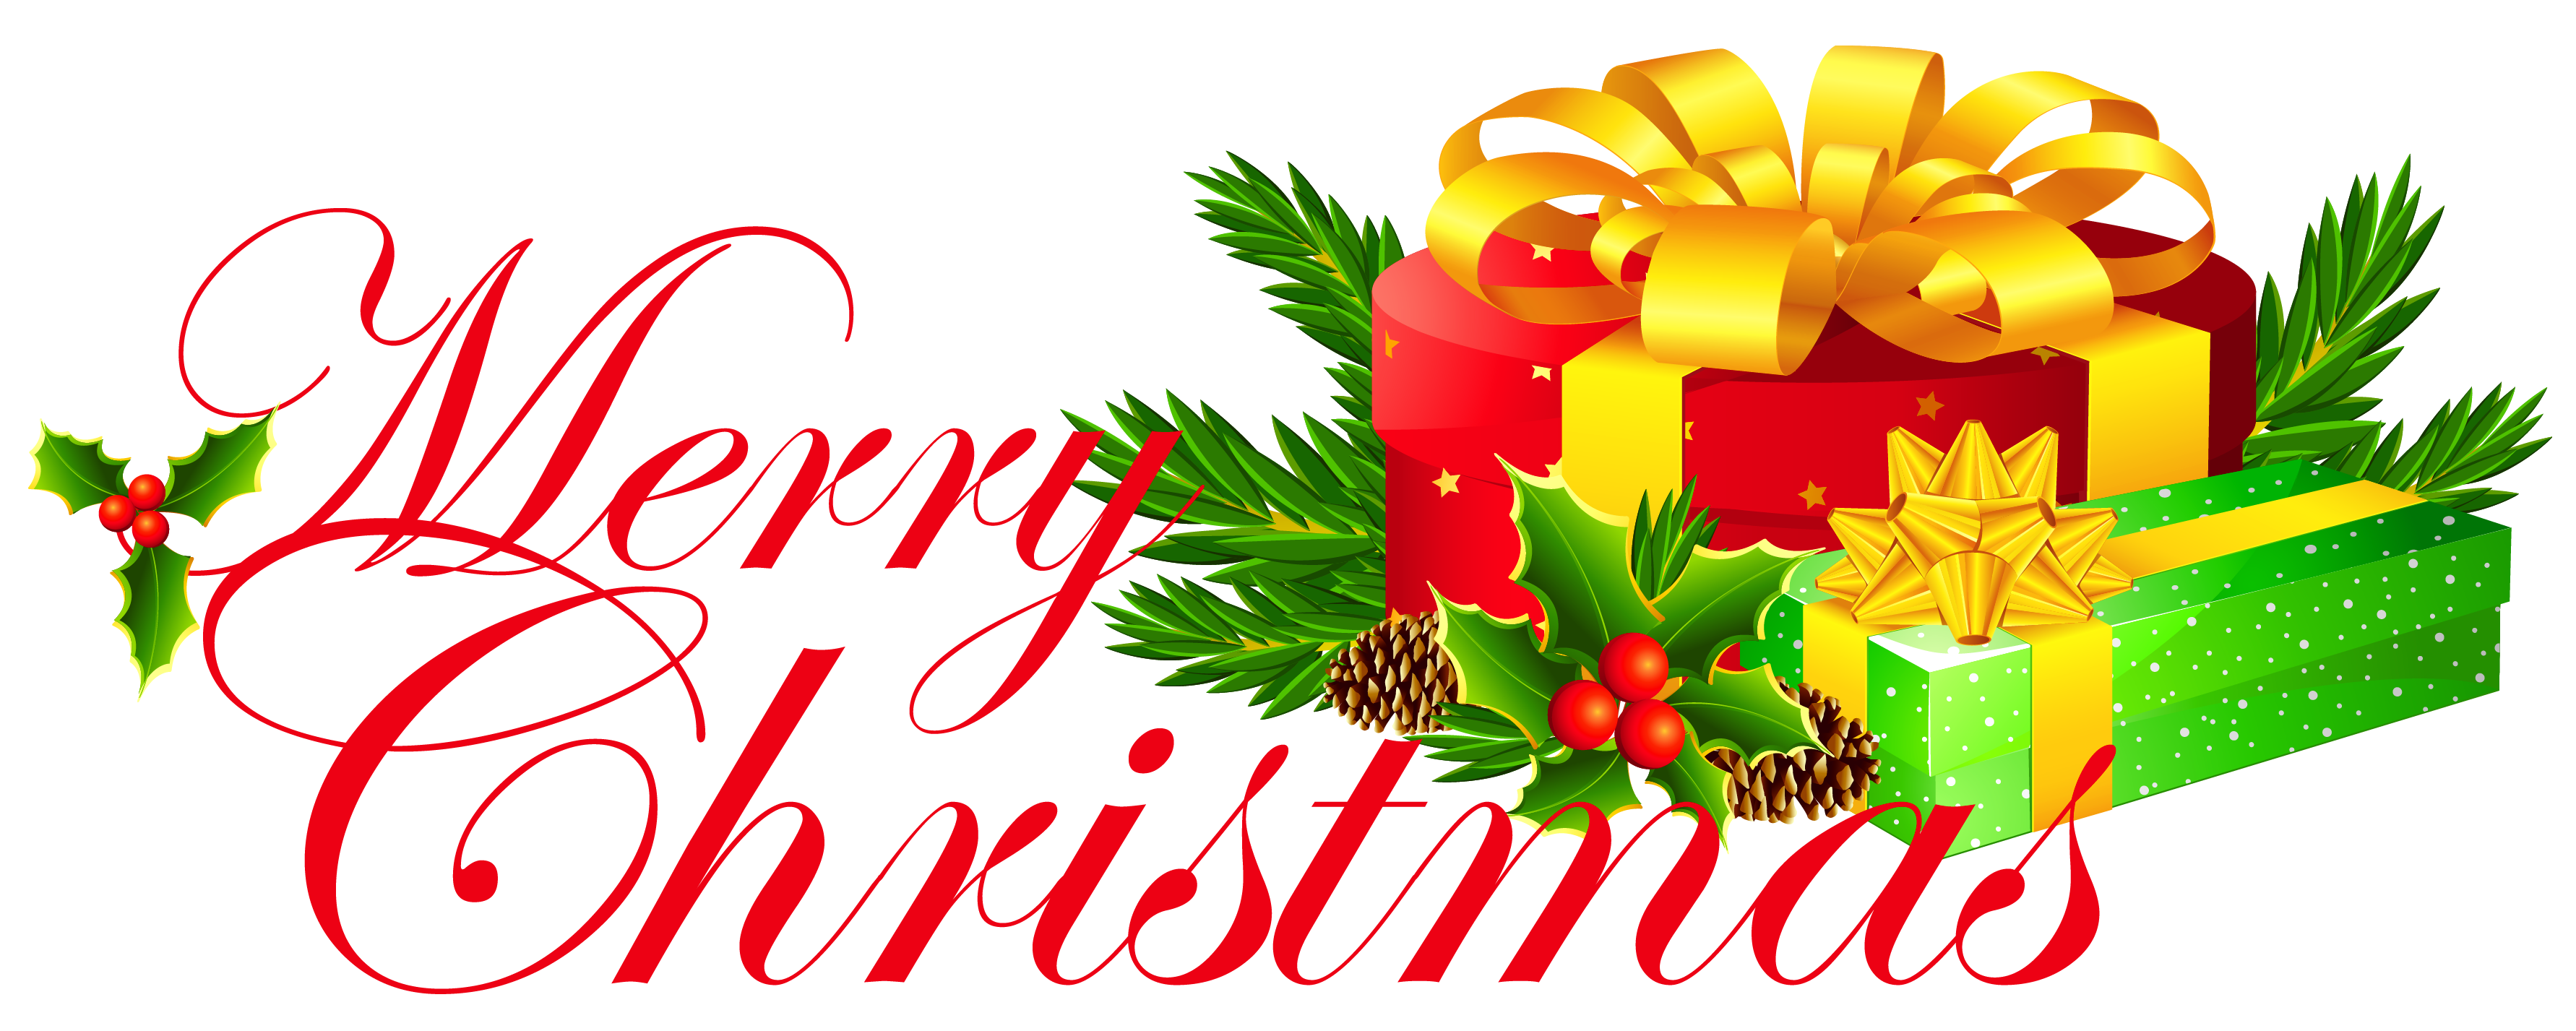 merry christmas clipart transparent background